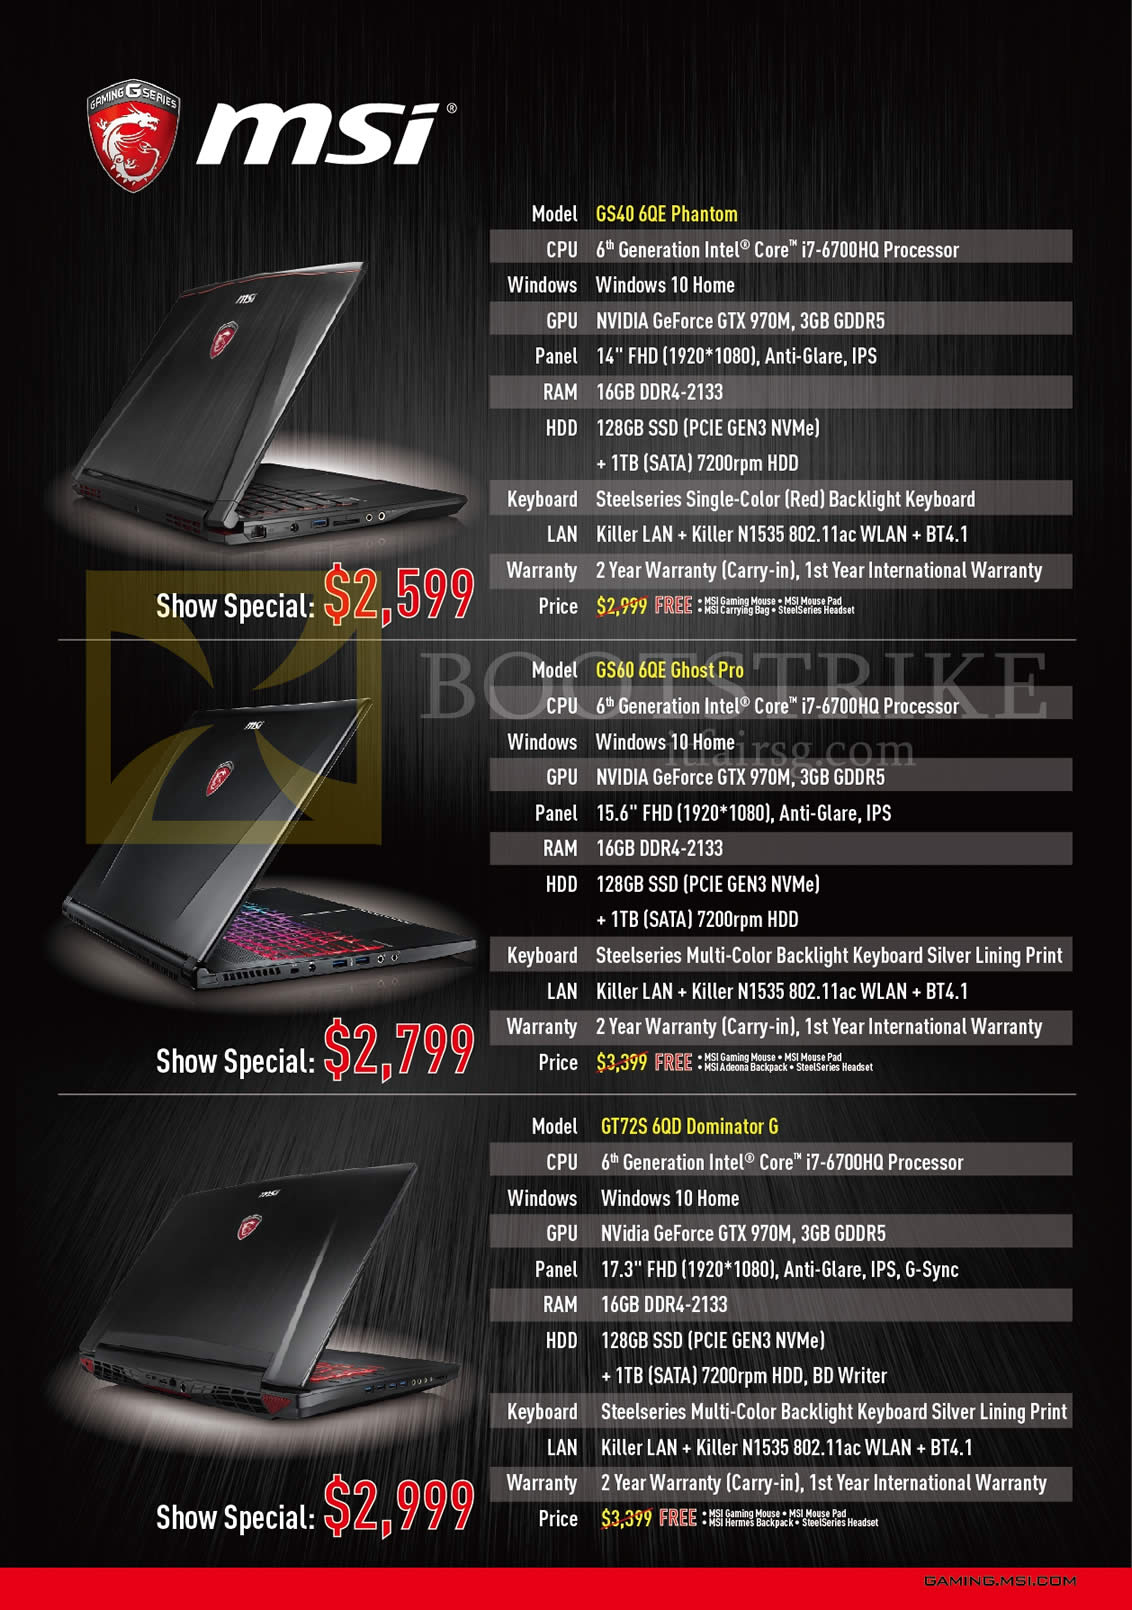 PC SHOW 2016 price list image brochure of MSI Notebooks GS40 6QE Phantom, GS60 6QE Ghost Pro, GT72S 6QD Dominator G